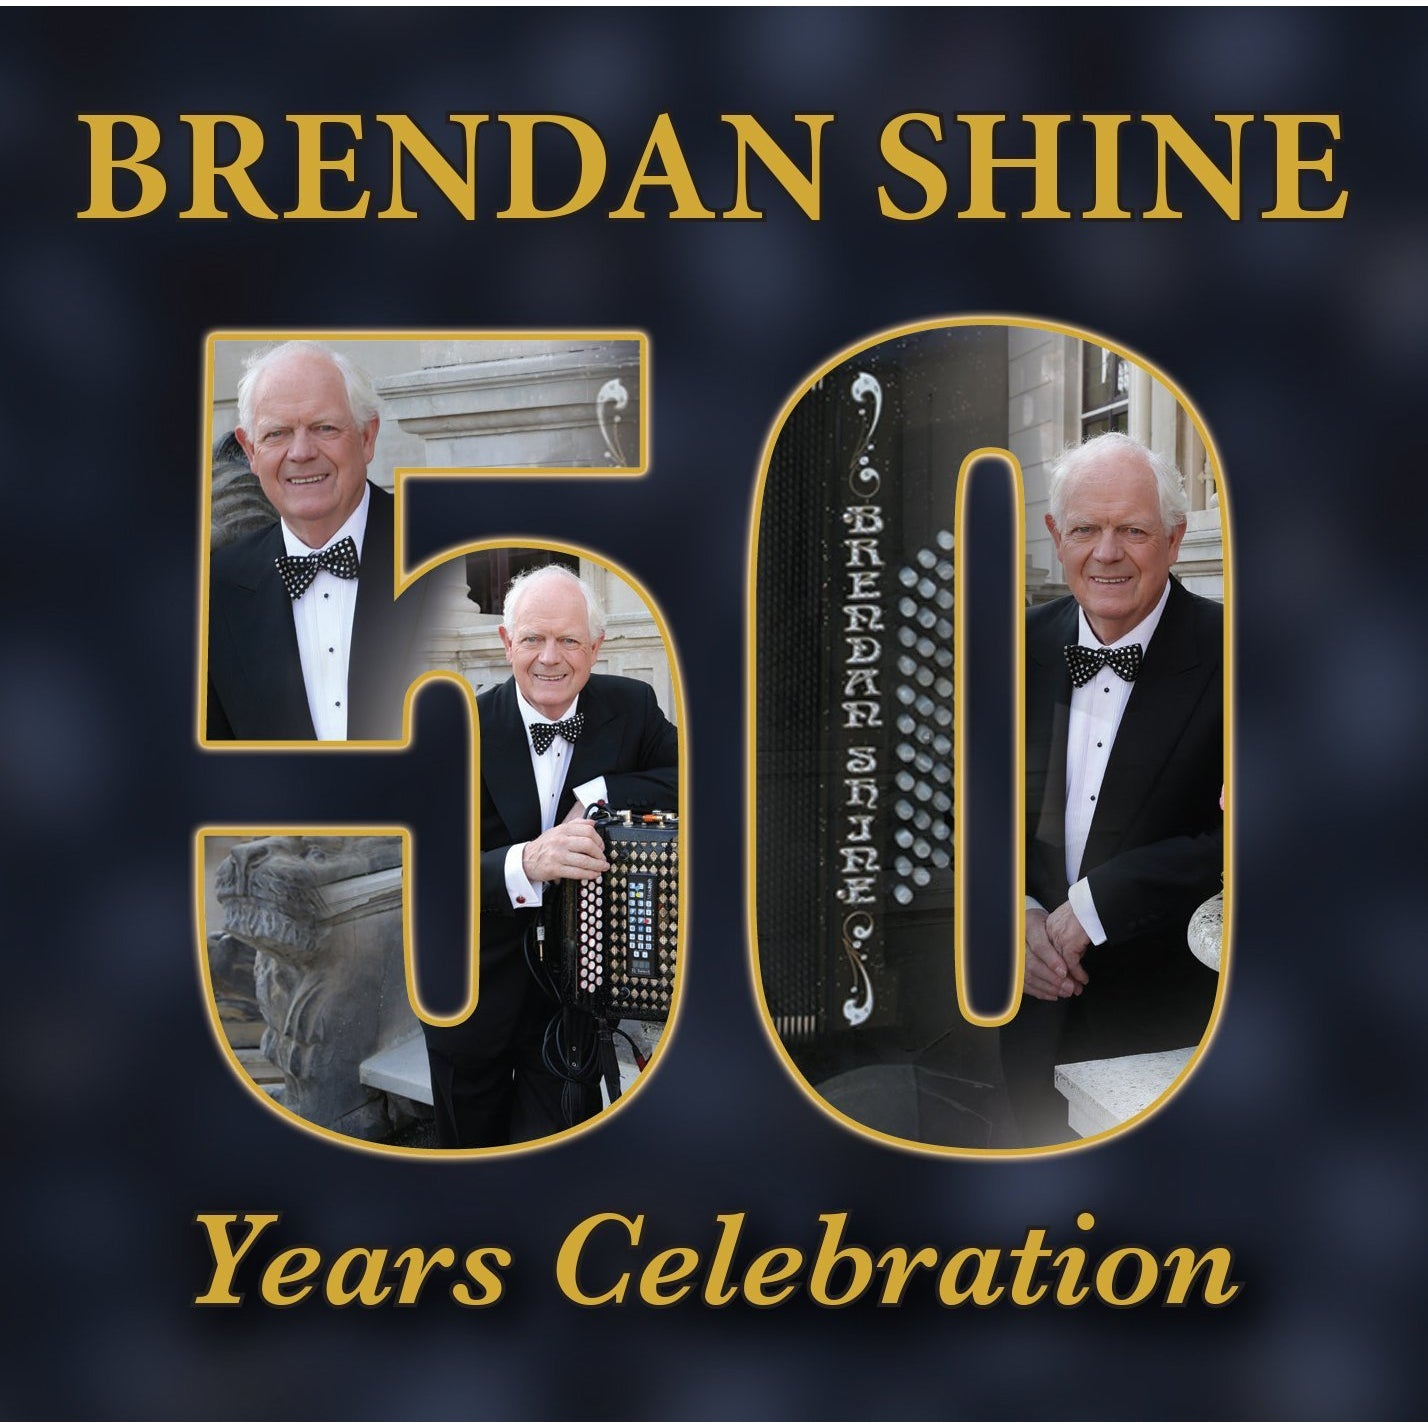 BRENDAN SHINE: 50 YEARS CELEBRATION [CD]